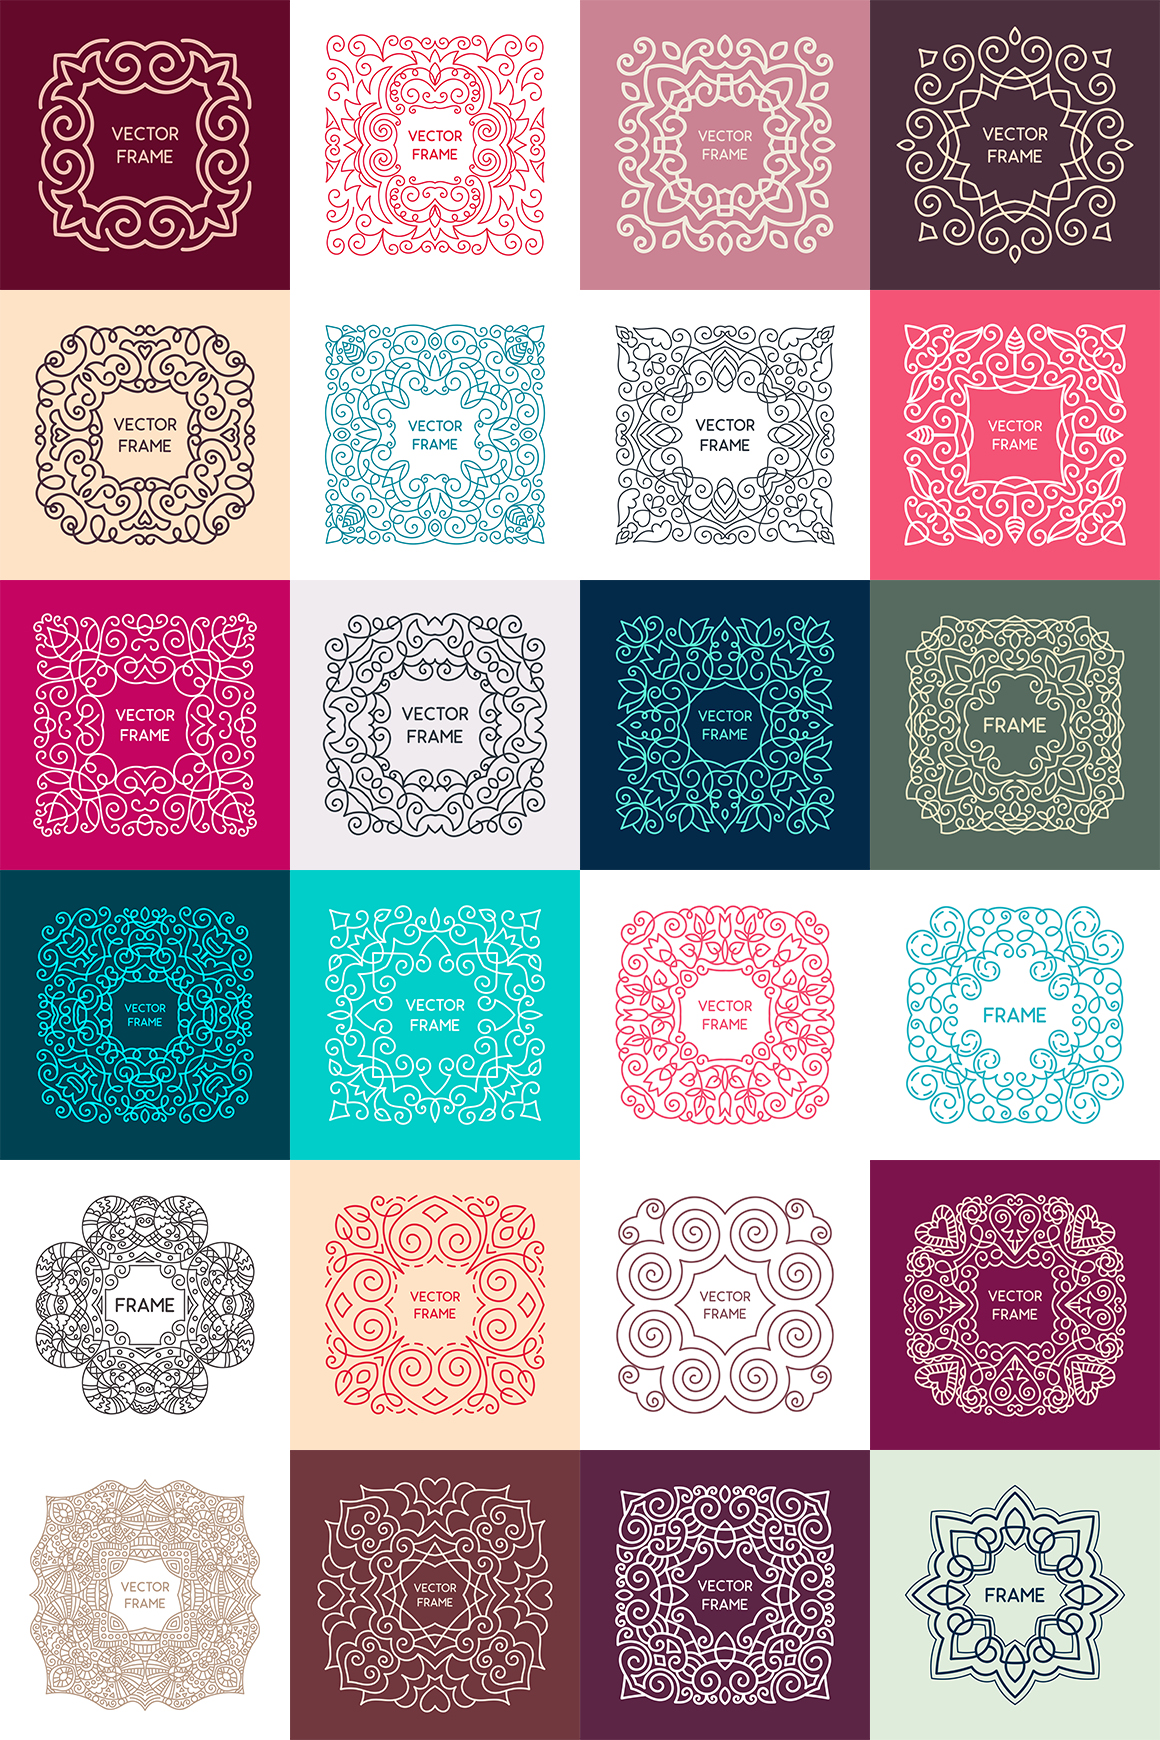 24 Vintage Vector Frames Collection example image 2